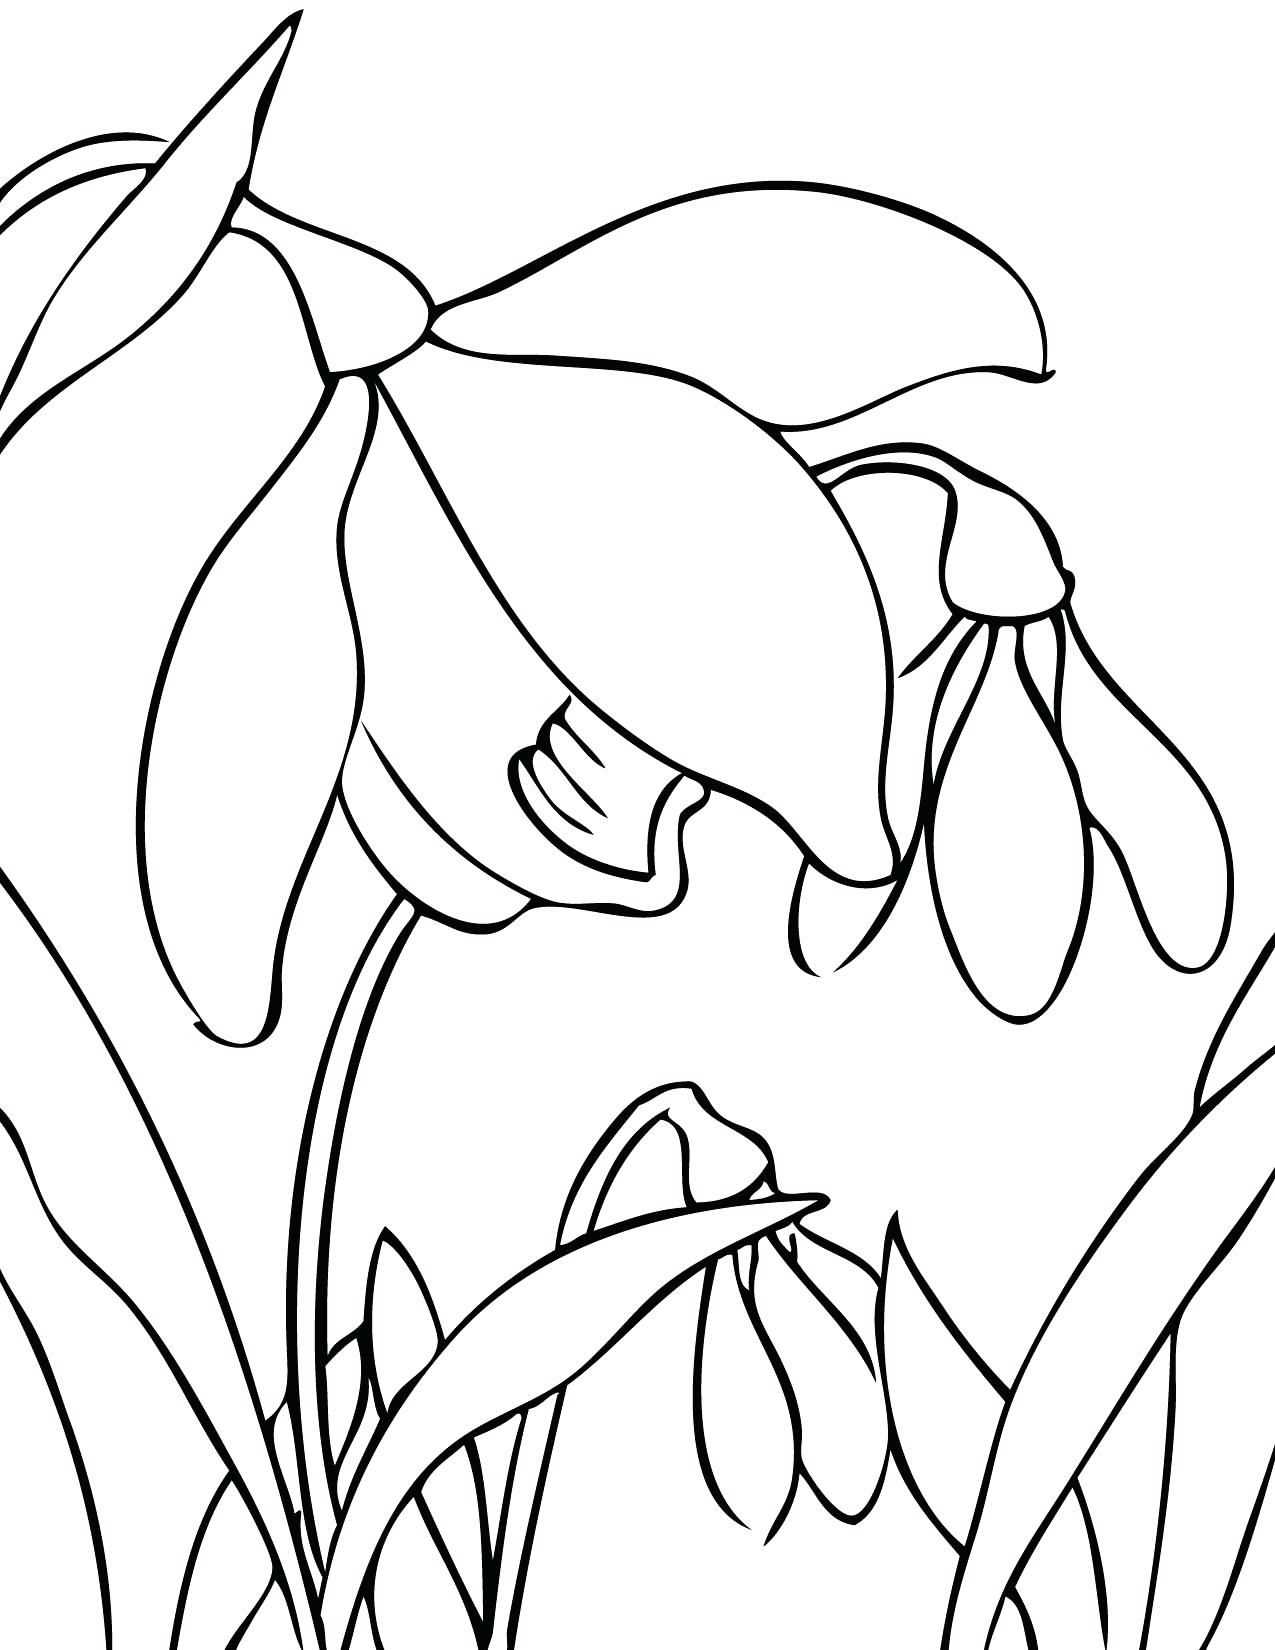 1275x1650 Coloring Coloring Pages For Spring Flowers Trends Flower Drawing